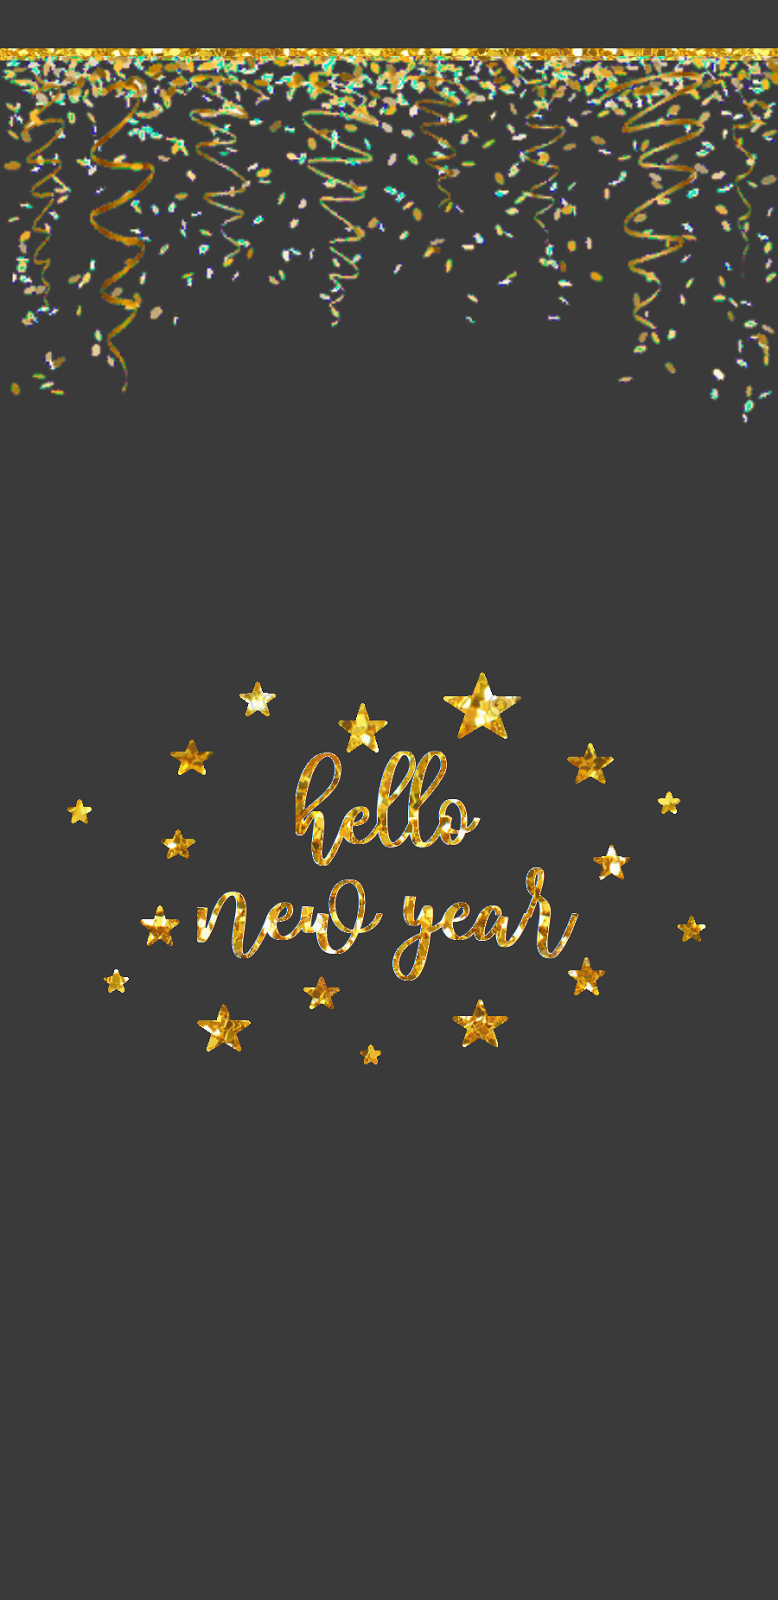 Iphone Wall Hny Tjn New Year S Eve Wallpaper Happy New Year Wallpaper New Year Wallpaper